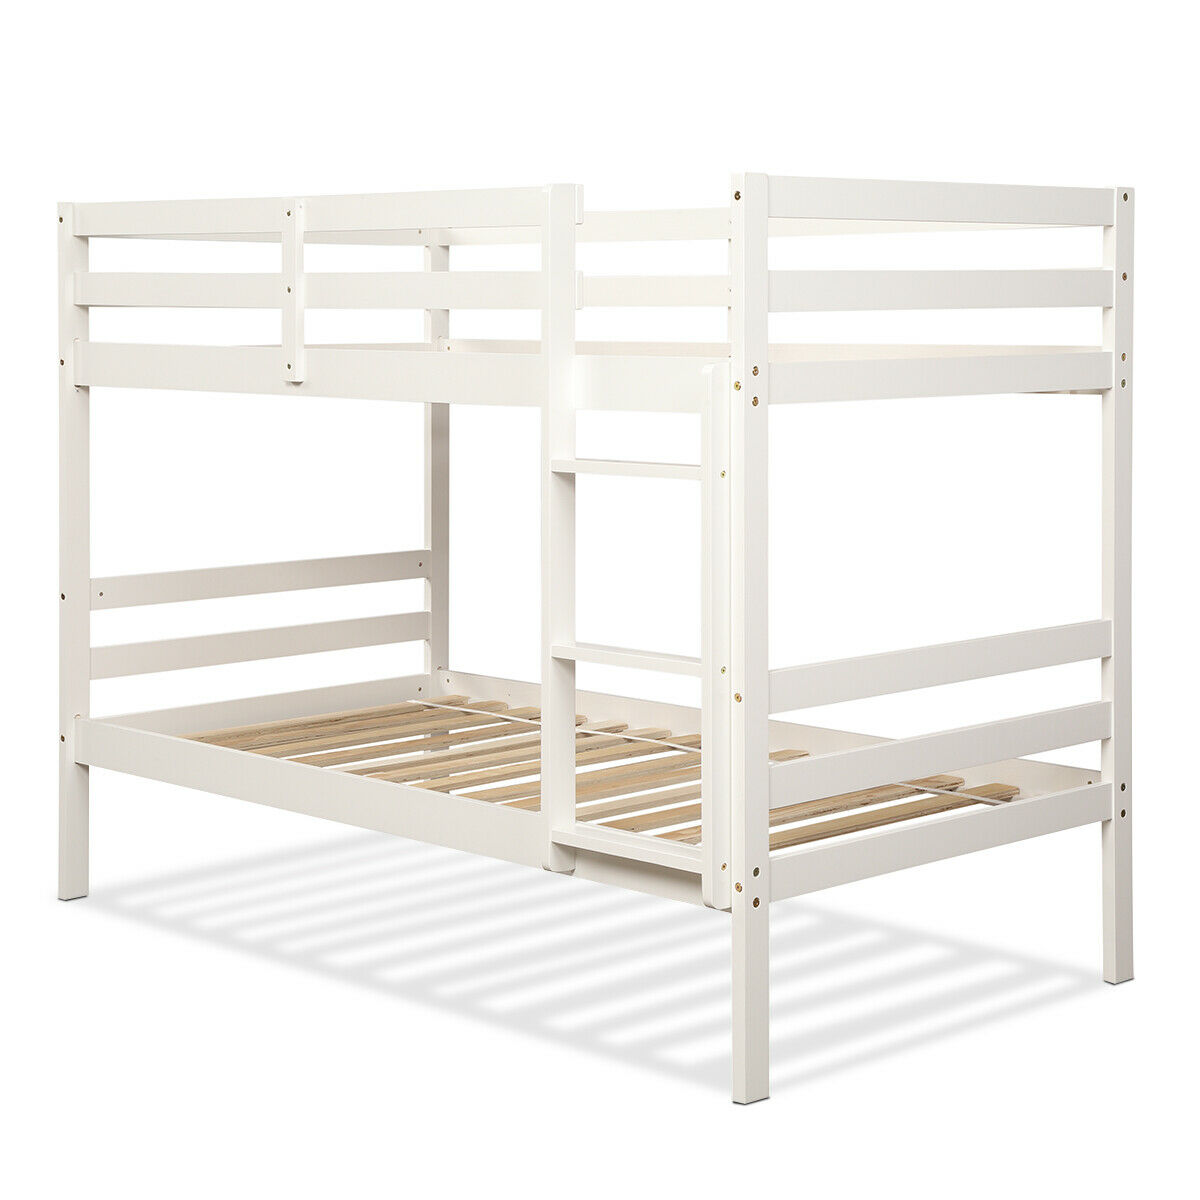 Wooden Bunk Beds With Ladder Marcuscable Com